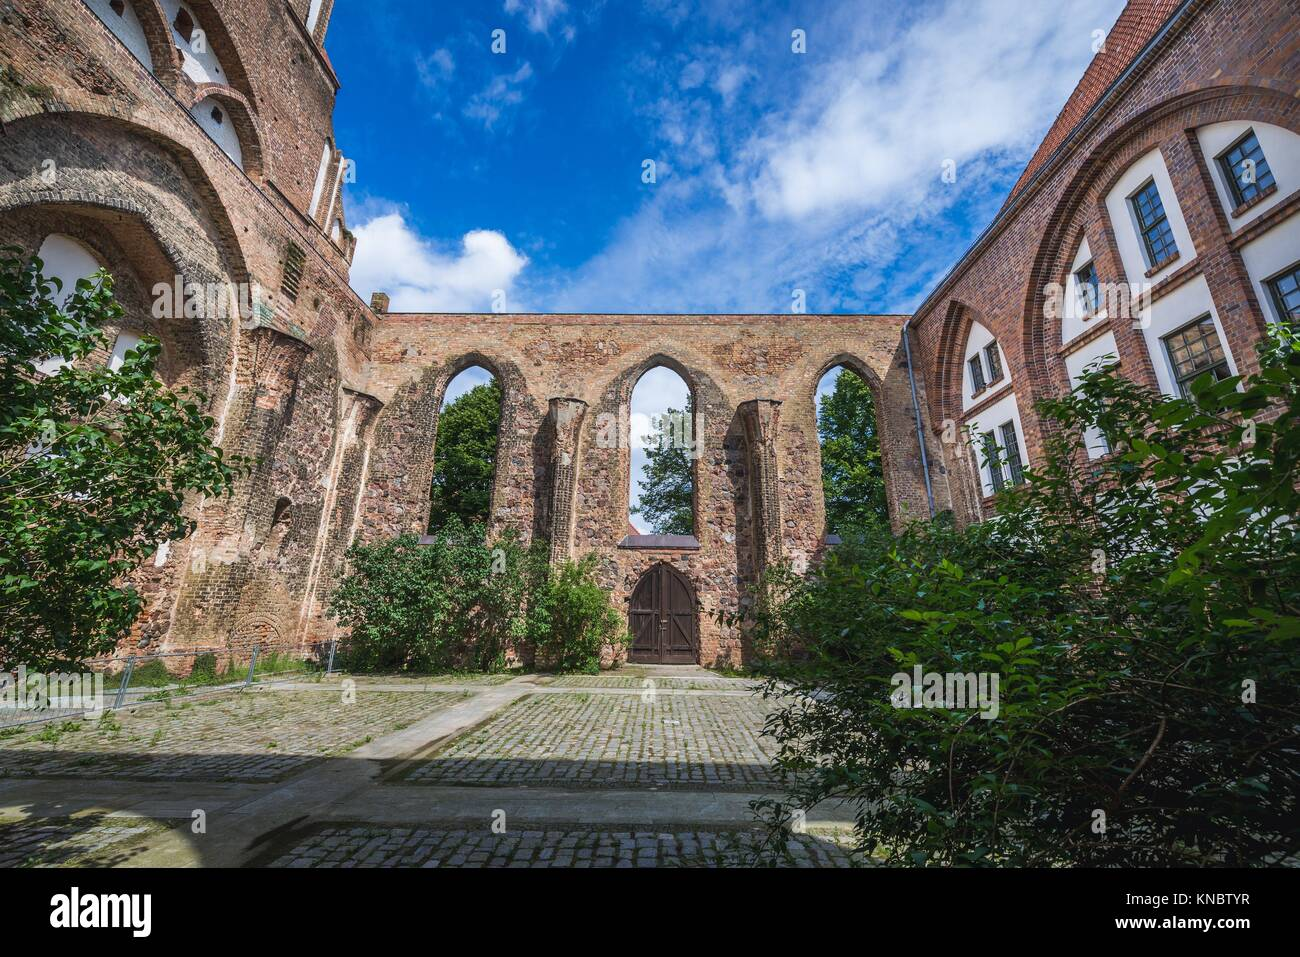 Saint Stephen Church in Gartz town in the Uckermark district of Brandenburg federal state in Germany. - Stock Image